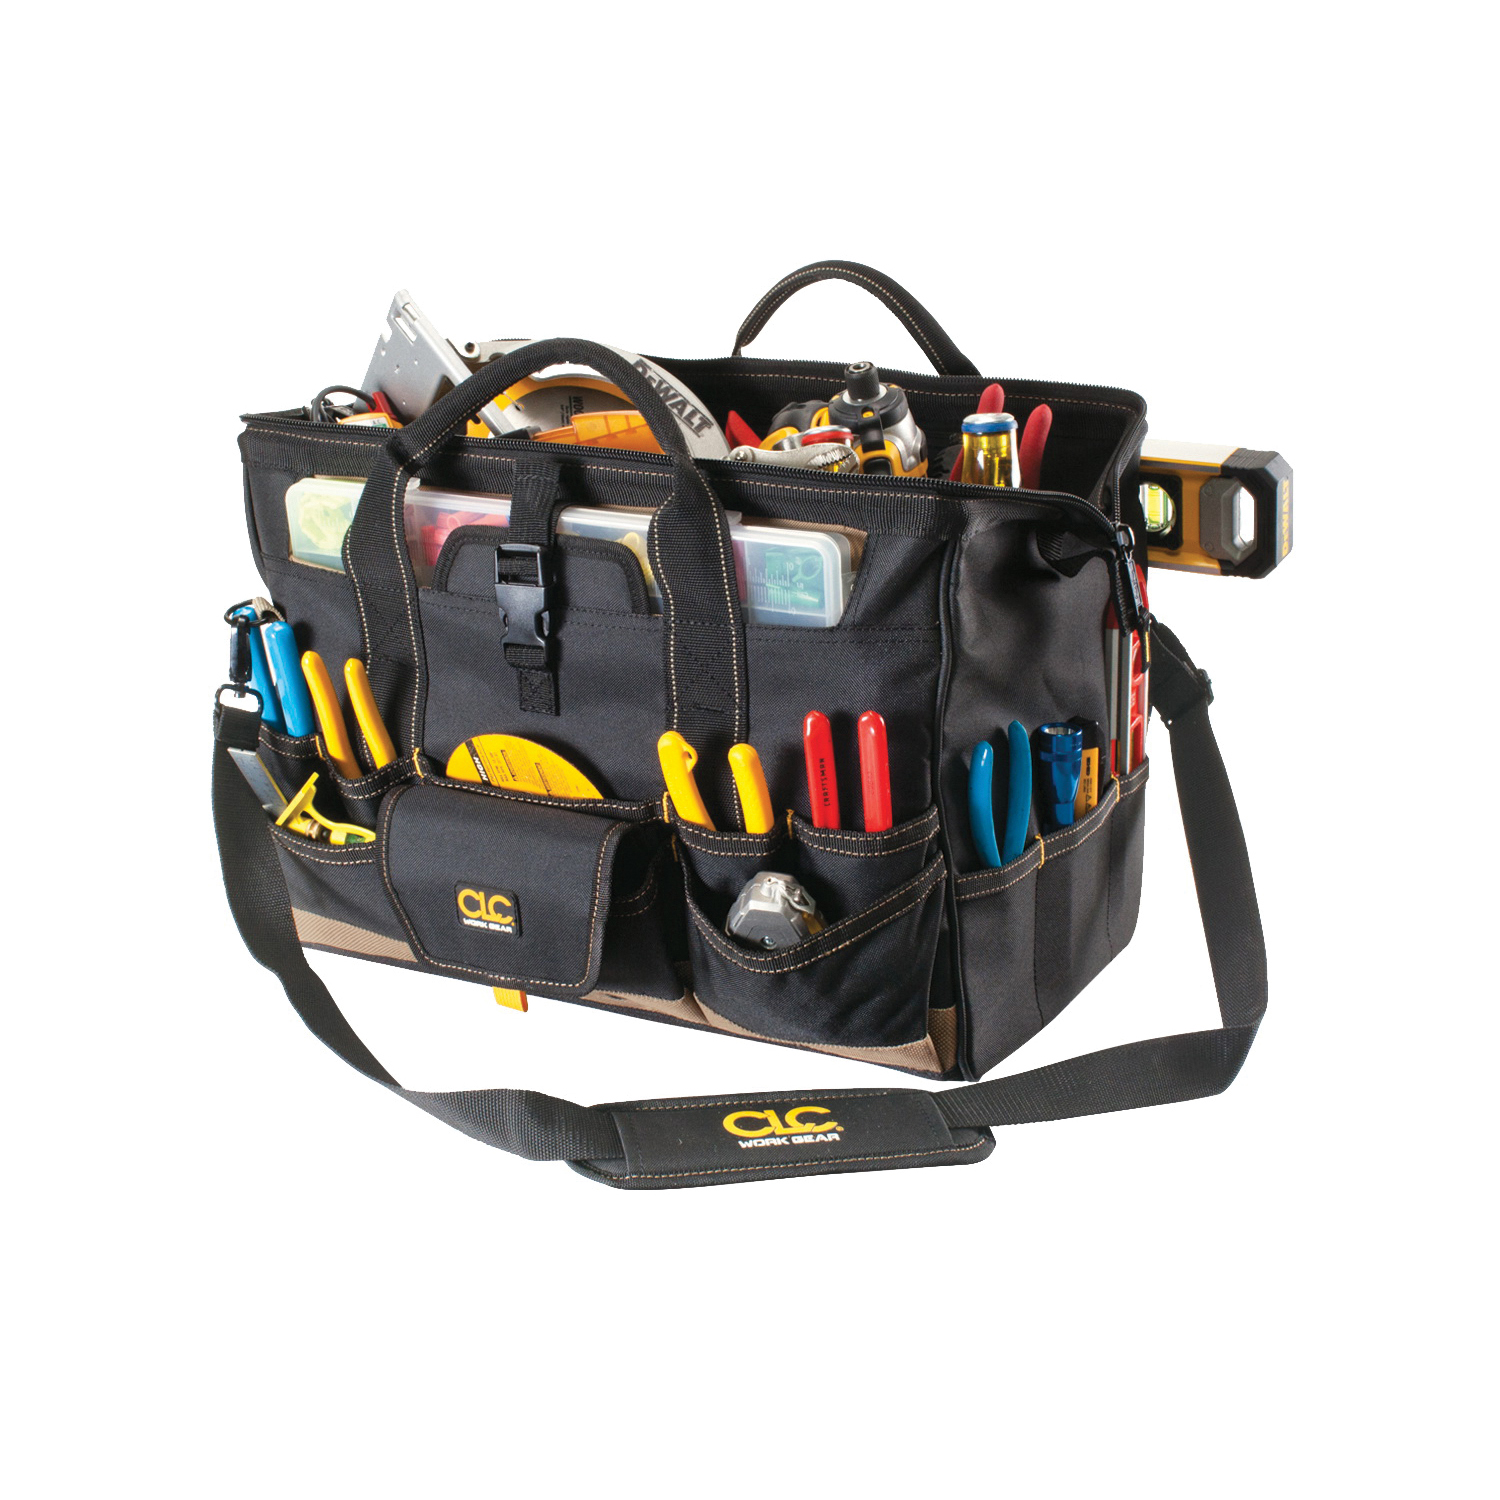 Picture of CLC Tool Works 1535 Tool Bag, 11 in W, 11 in D, 18 in H, 37 -Pocket, Polyester